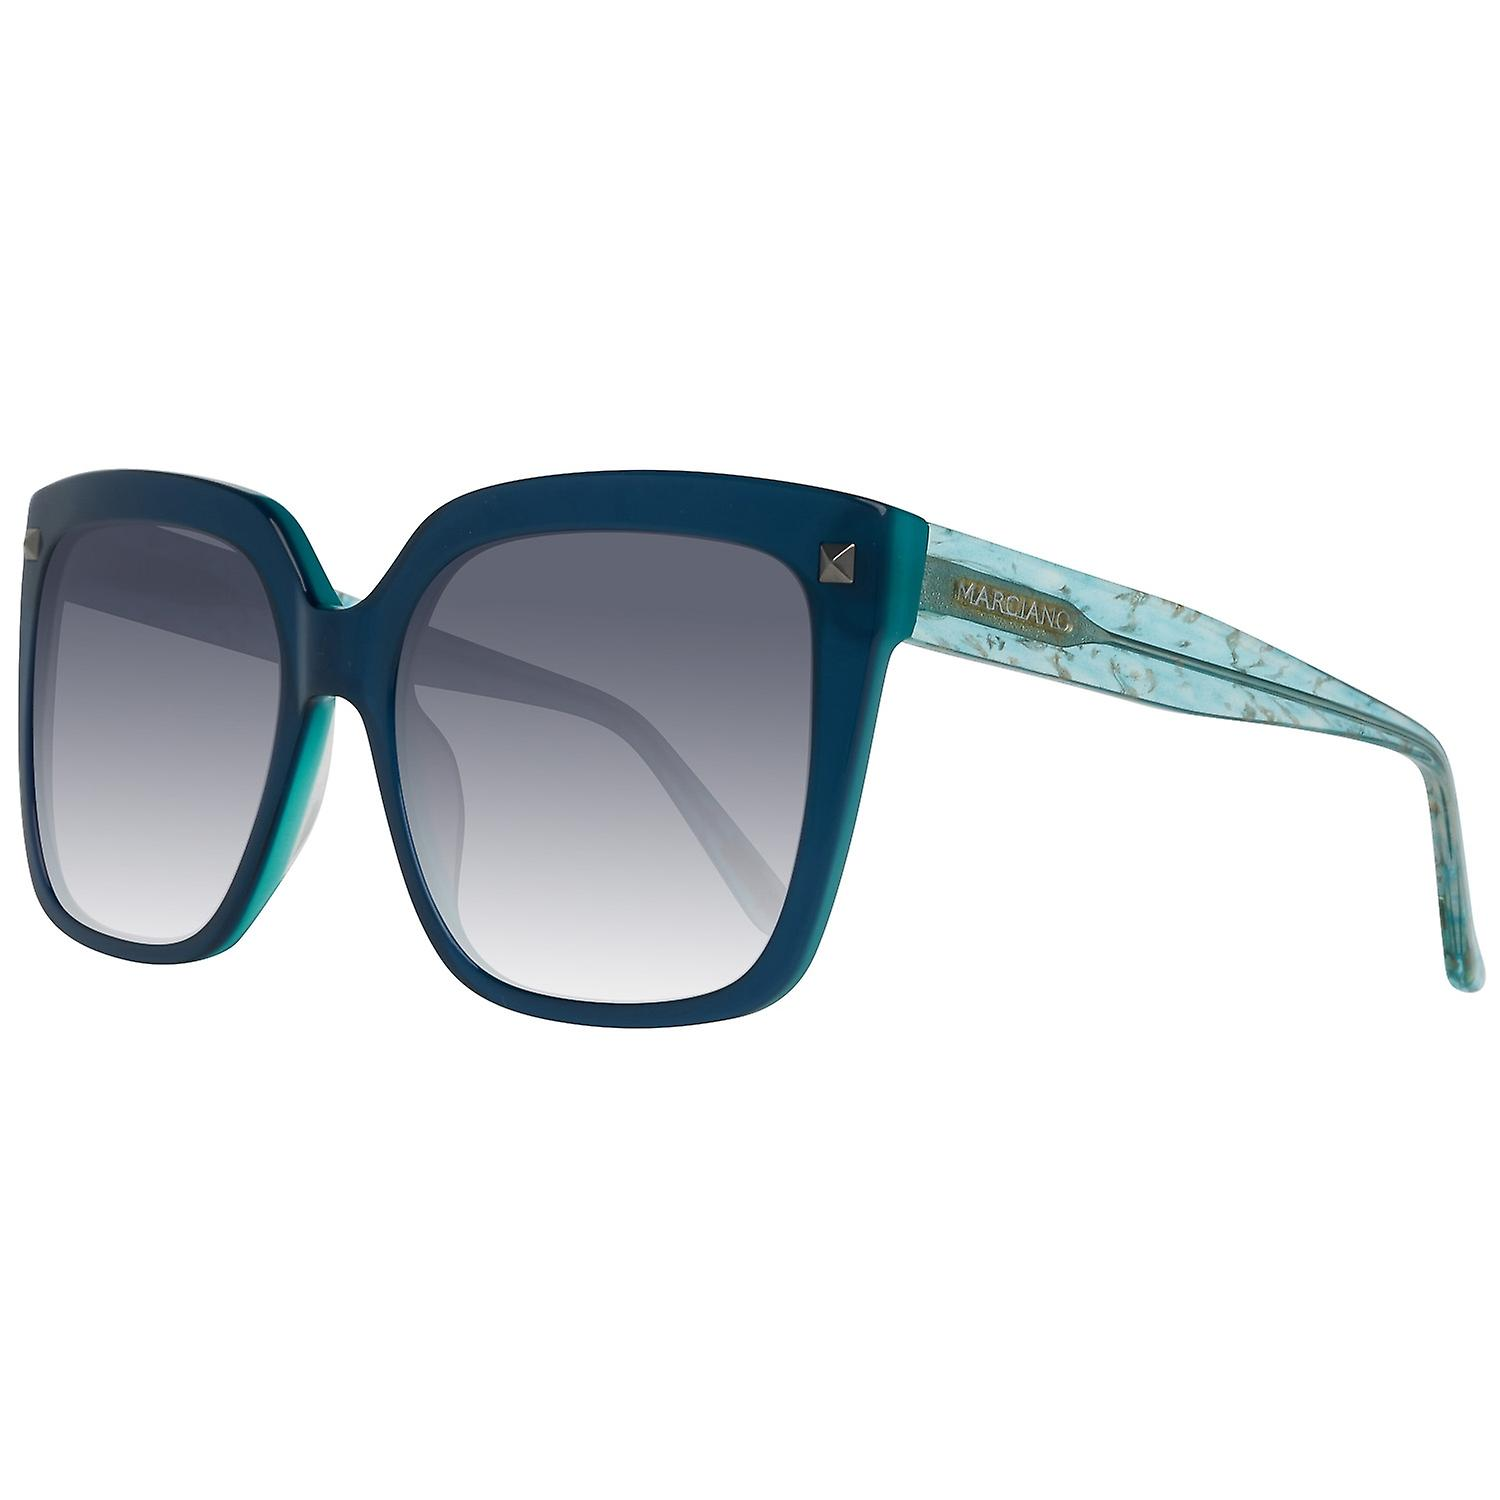 884bc3dcf5c42 GUESS by MARCIANO women s blue sunglasses